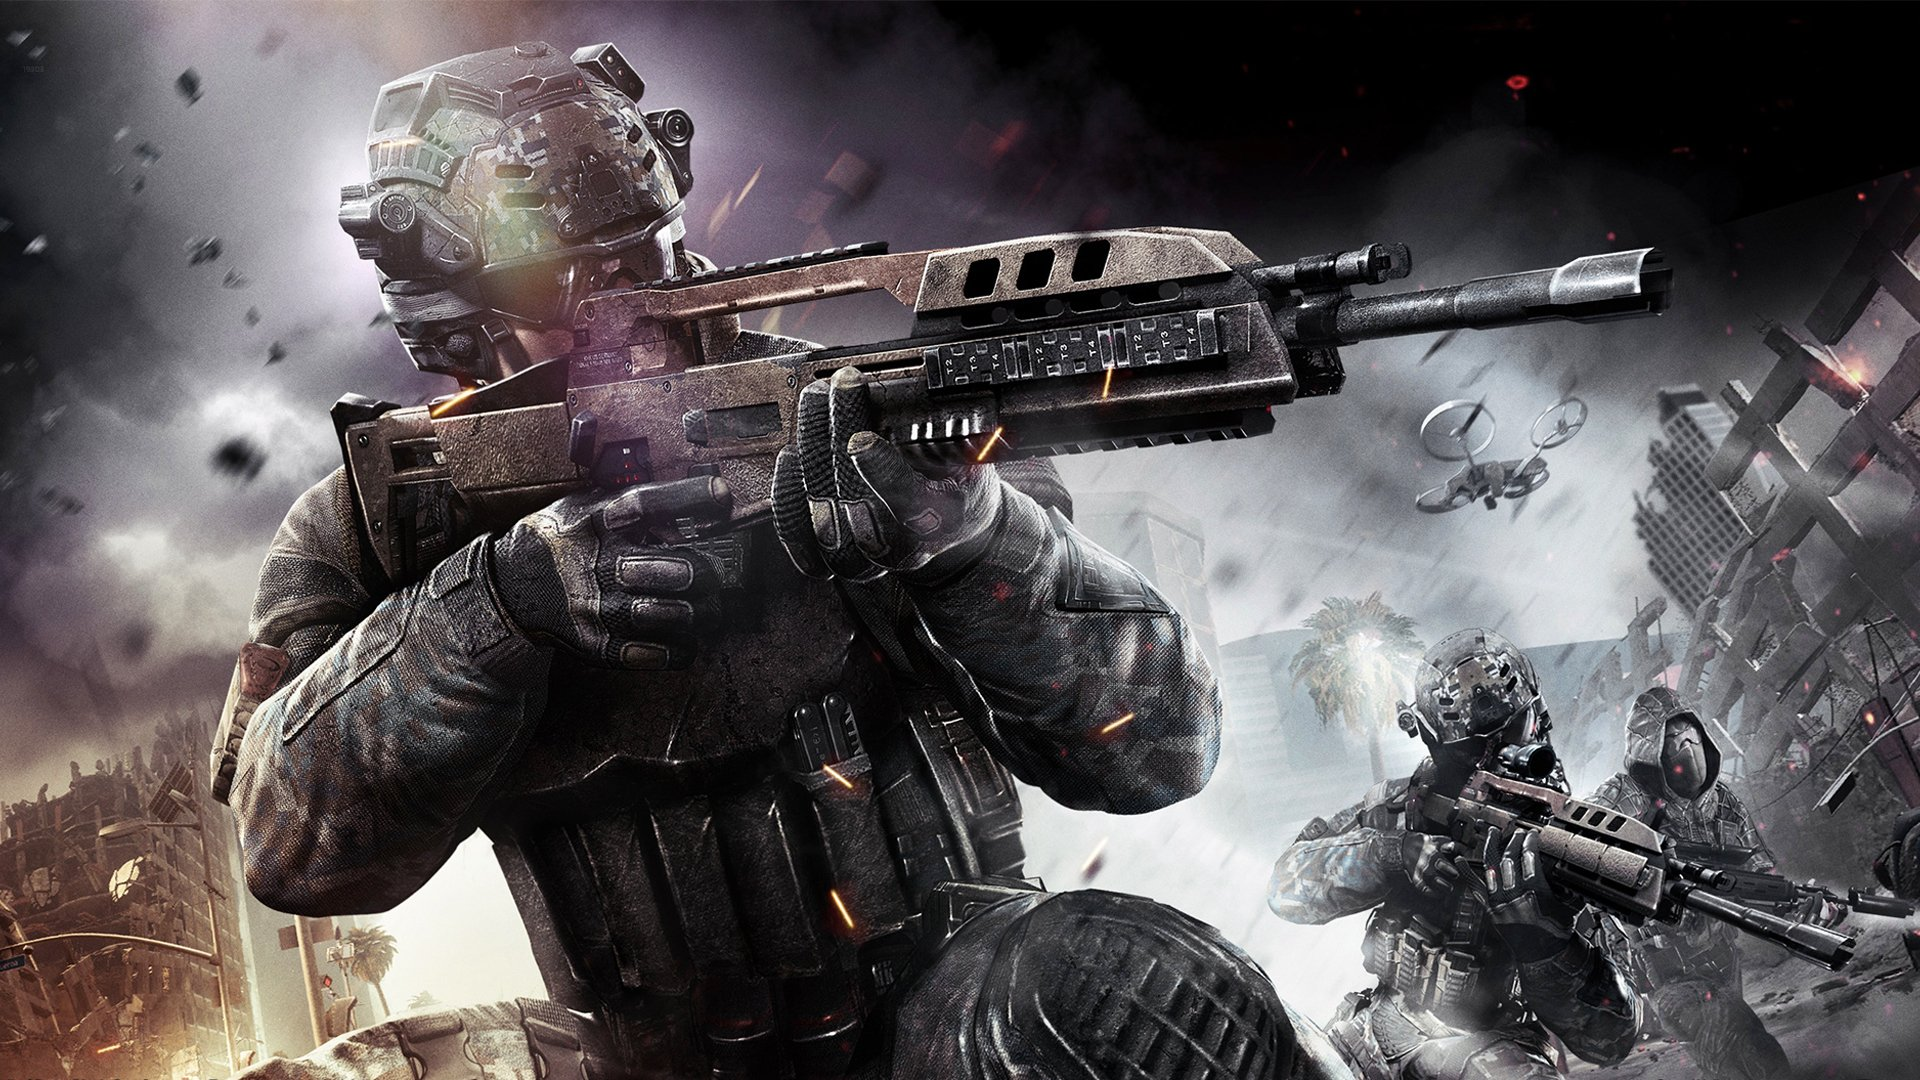 Call Of Duty  C2 B7 Hd Wallpaper Background Image Id328192